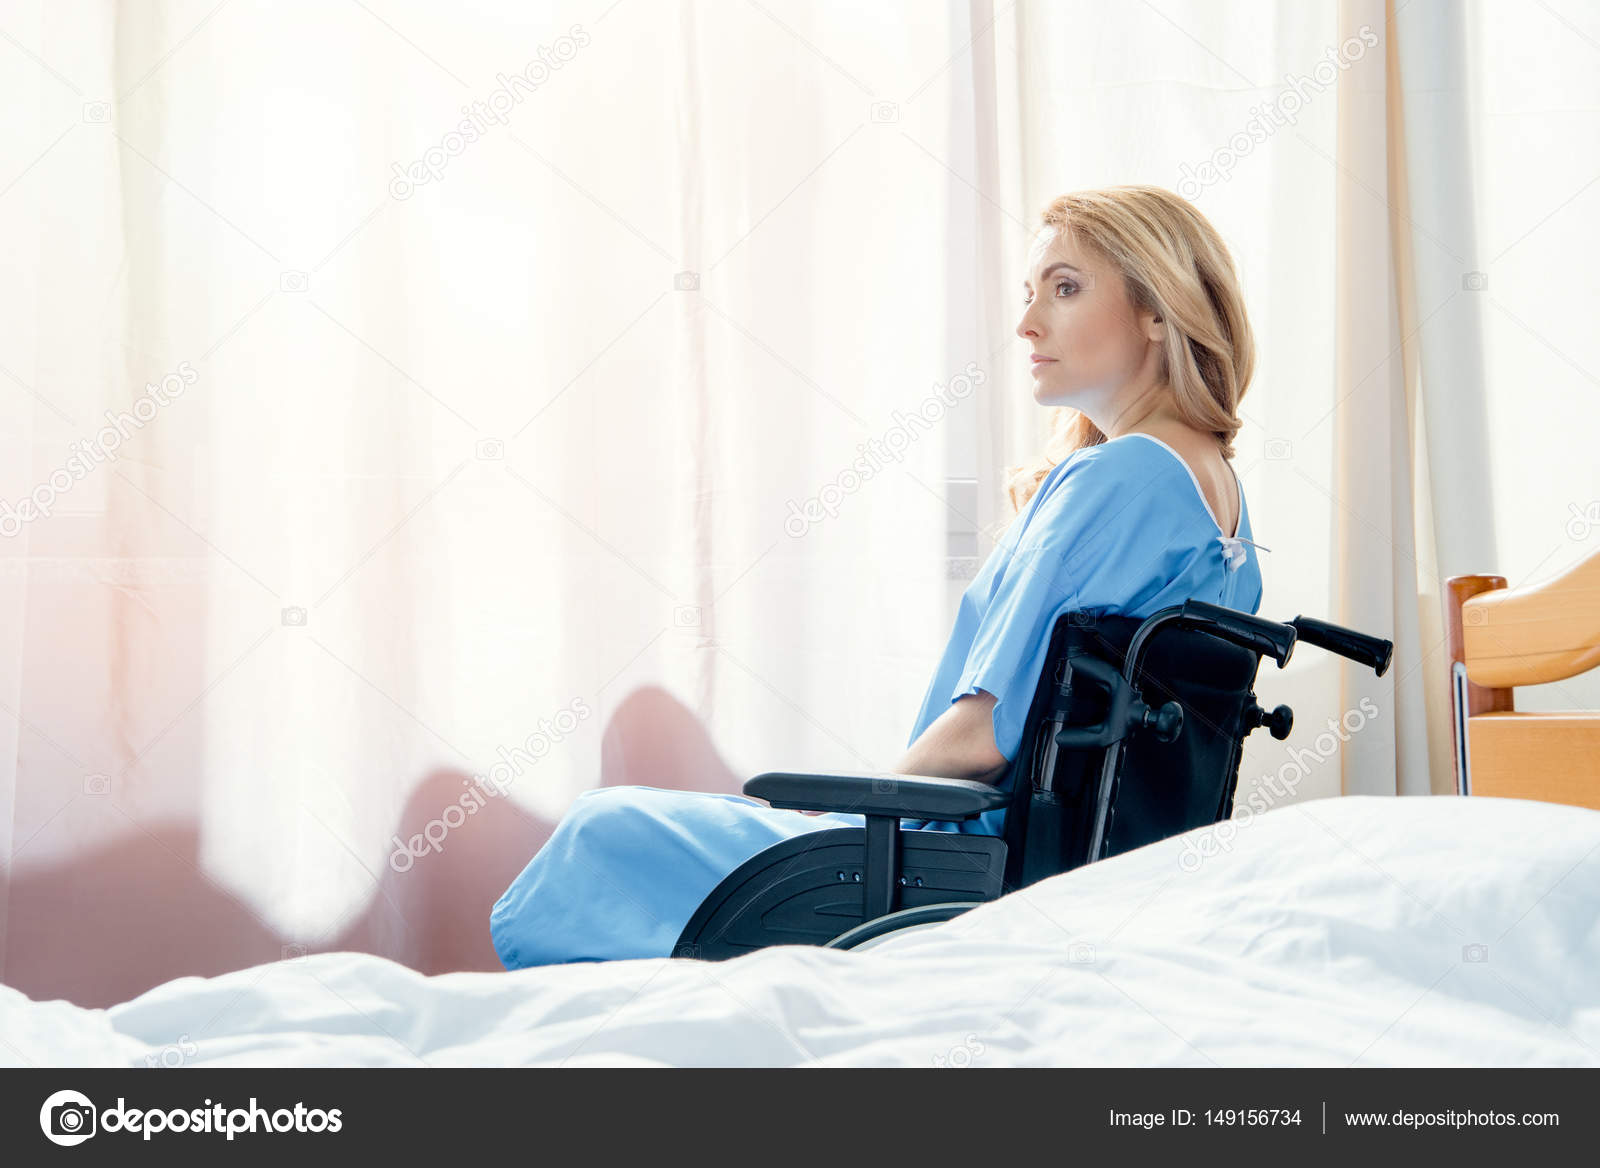 Wheelchair Woman In Hospital U2014 Stock Photo